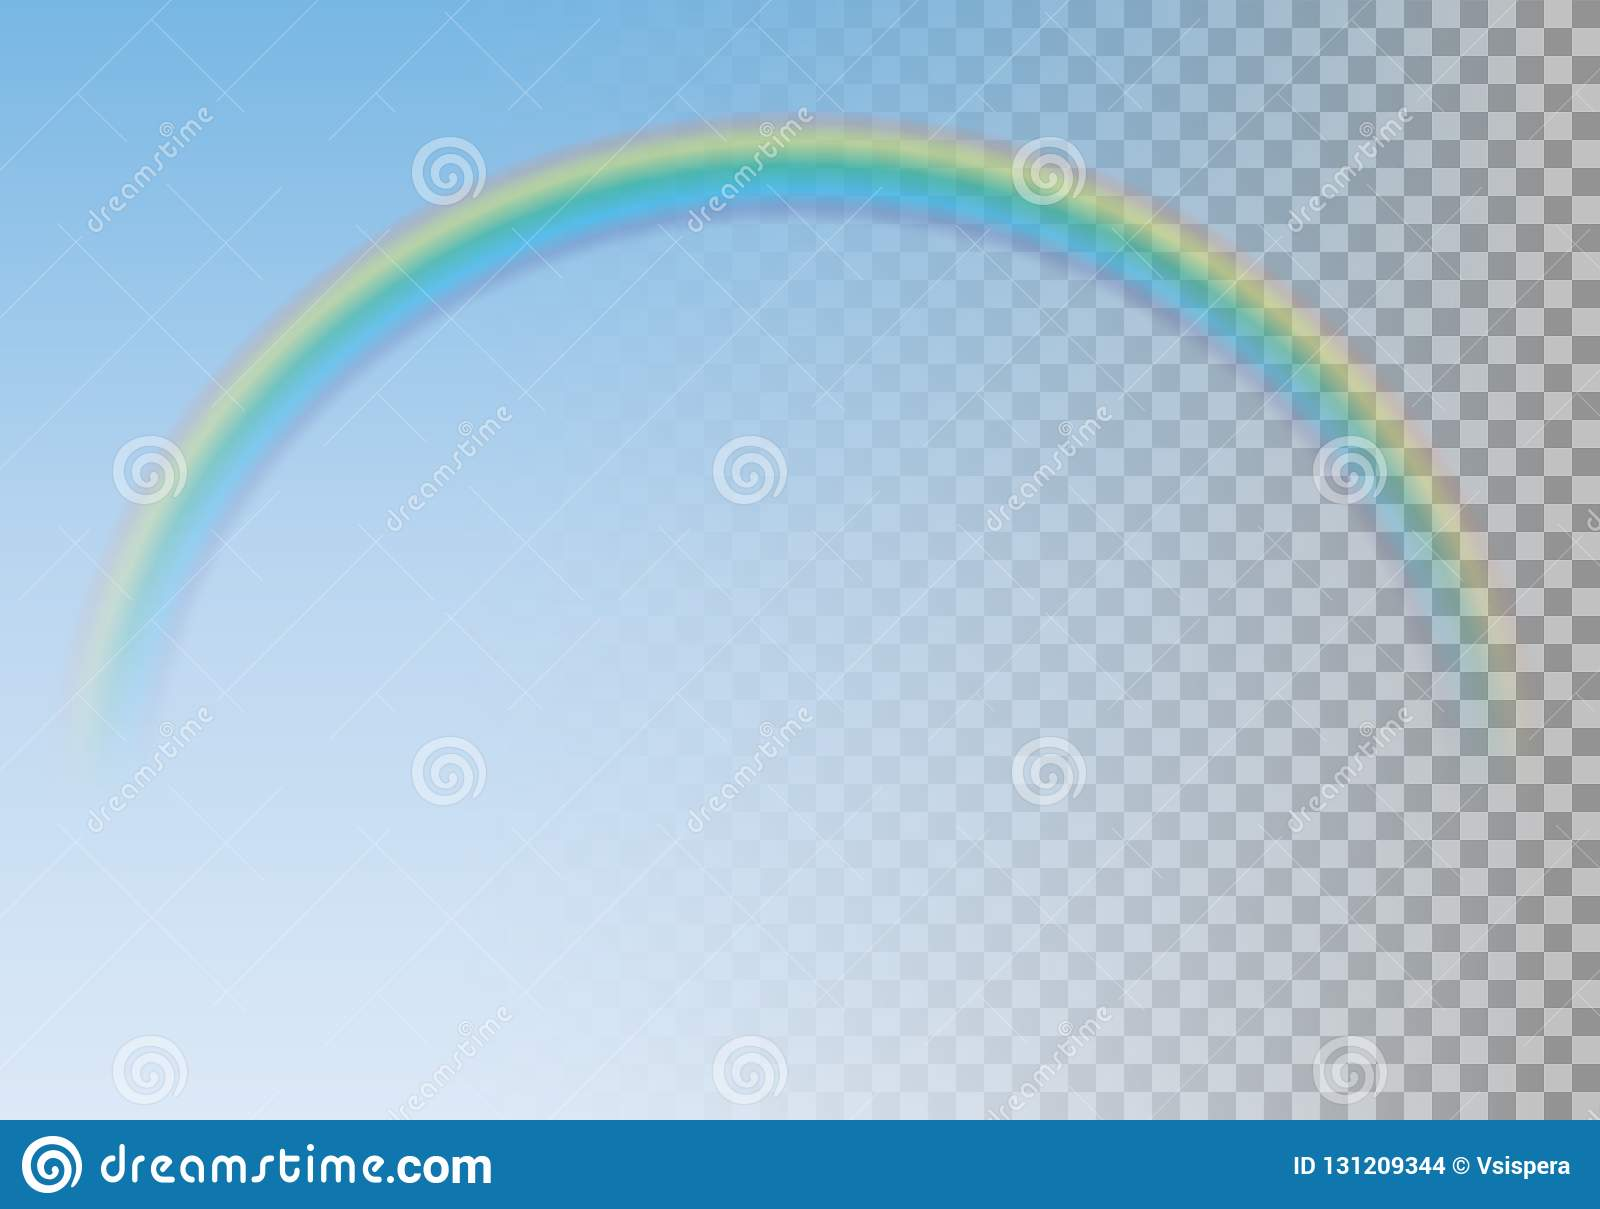 Realistic illustration of transparent colorful rainbow on blue s